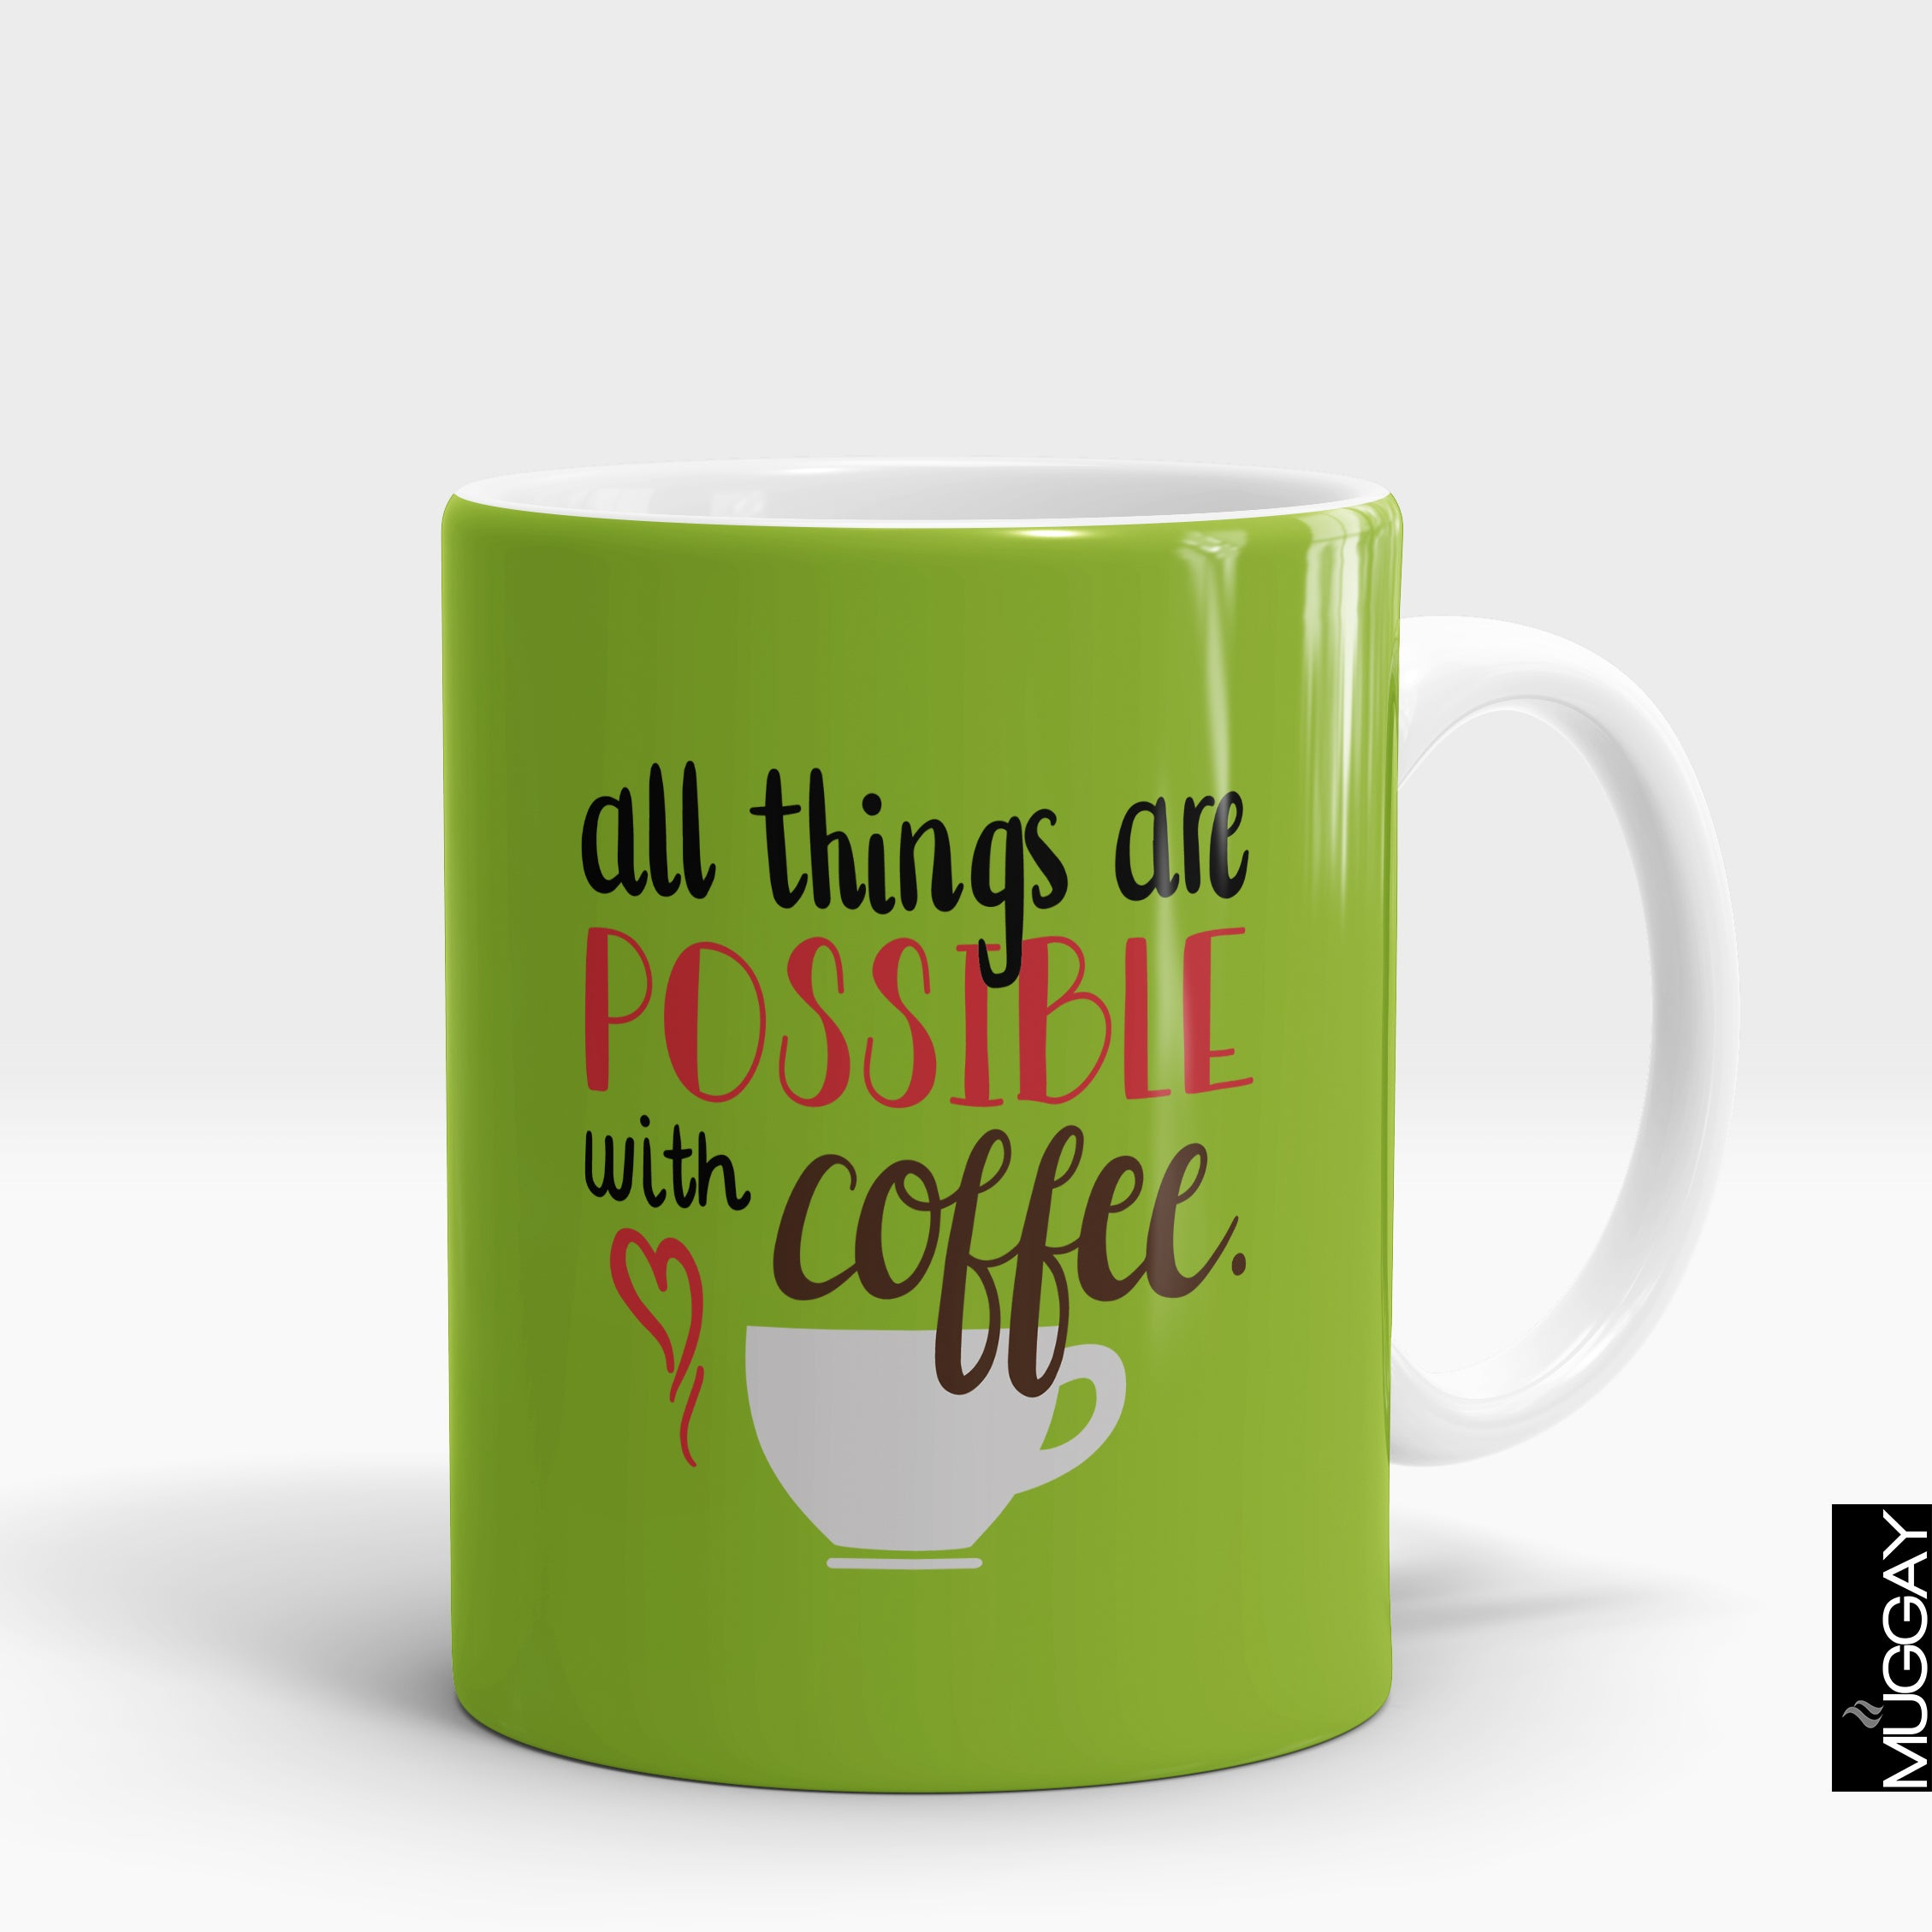 All Things Are Possible With Coffee Mug - Muggay.com - Mugs - Printing shop - truck Art mugs - Mug printing - Customized printing - Digital printing - Muggay